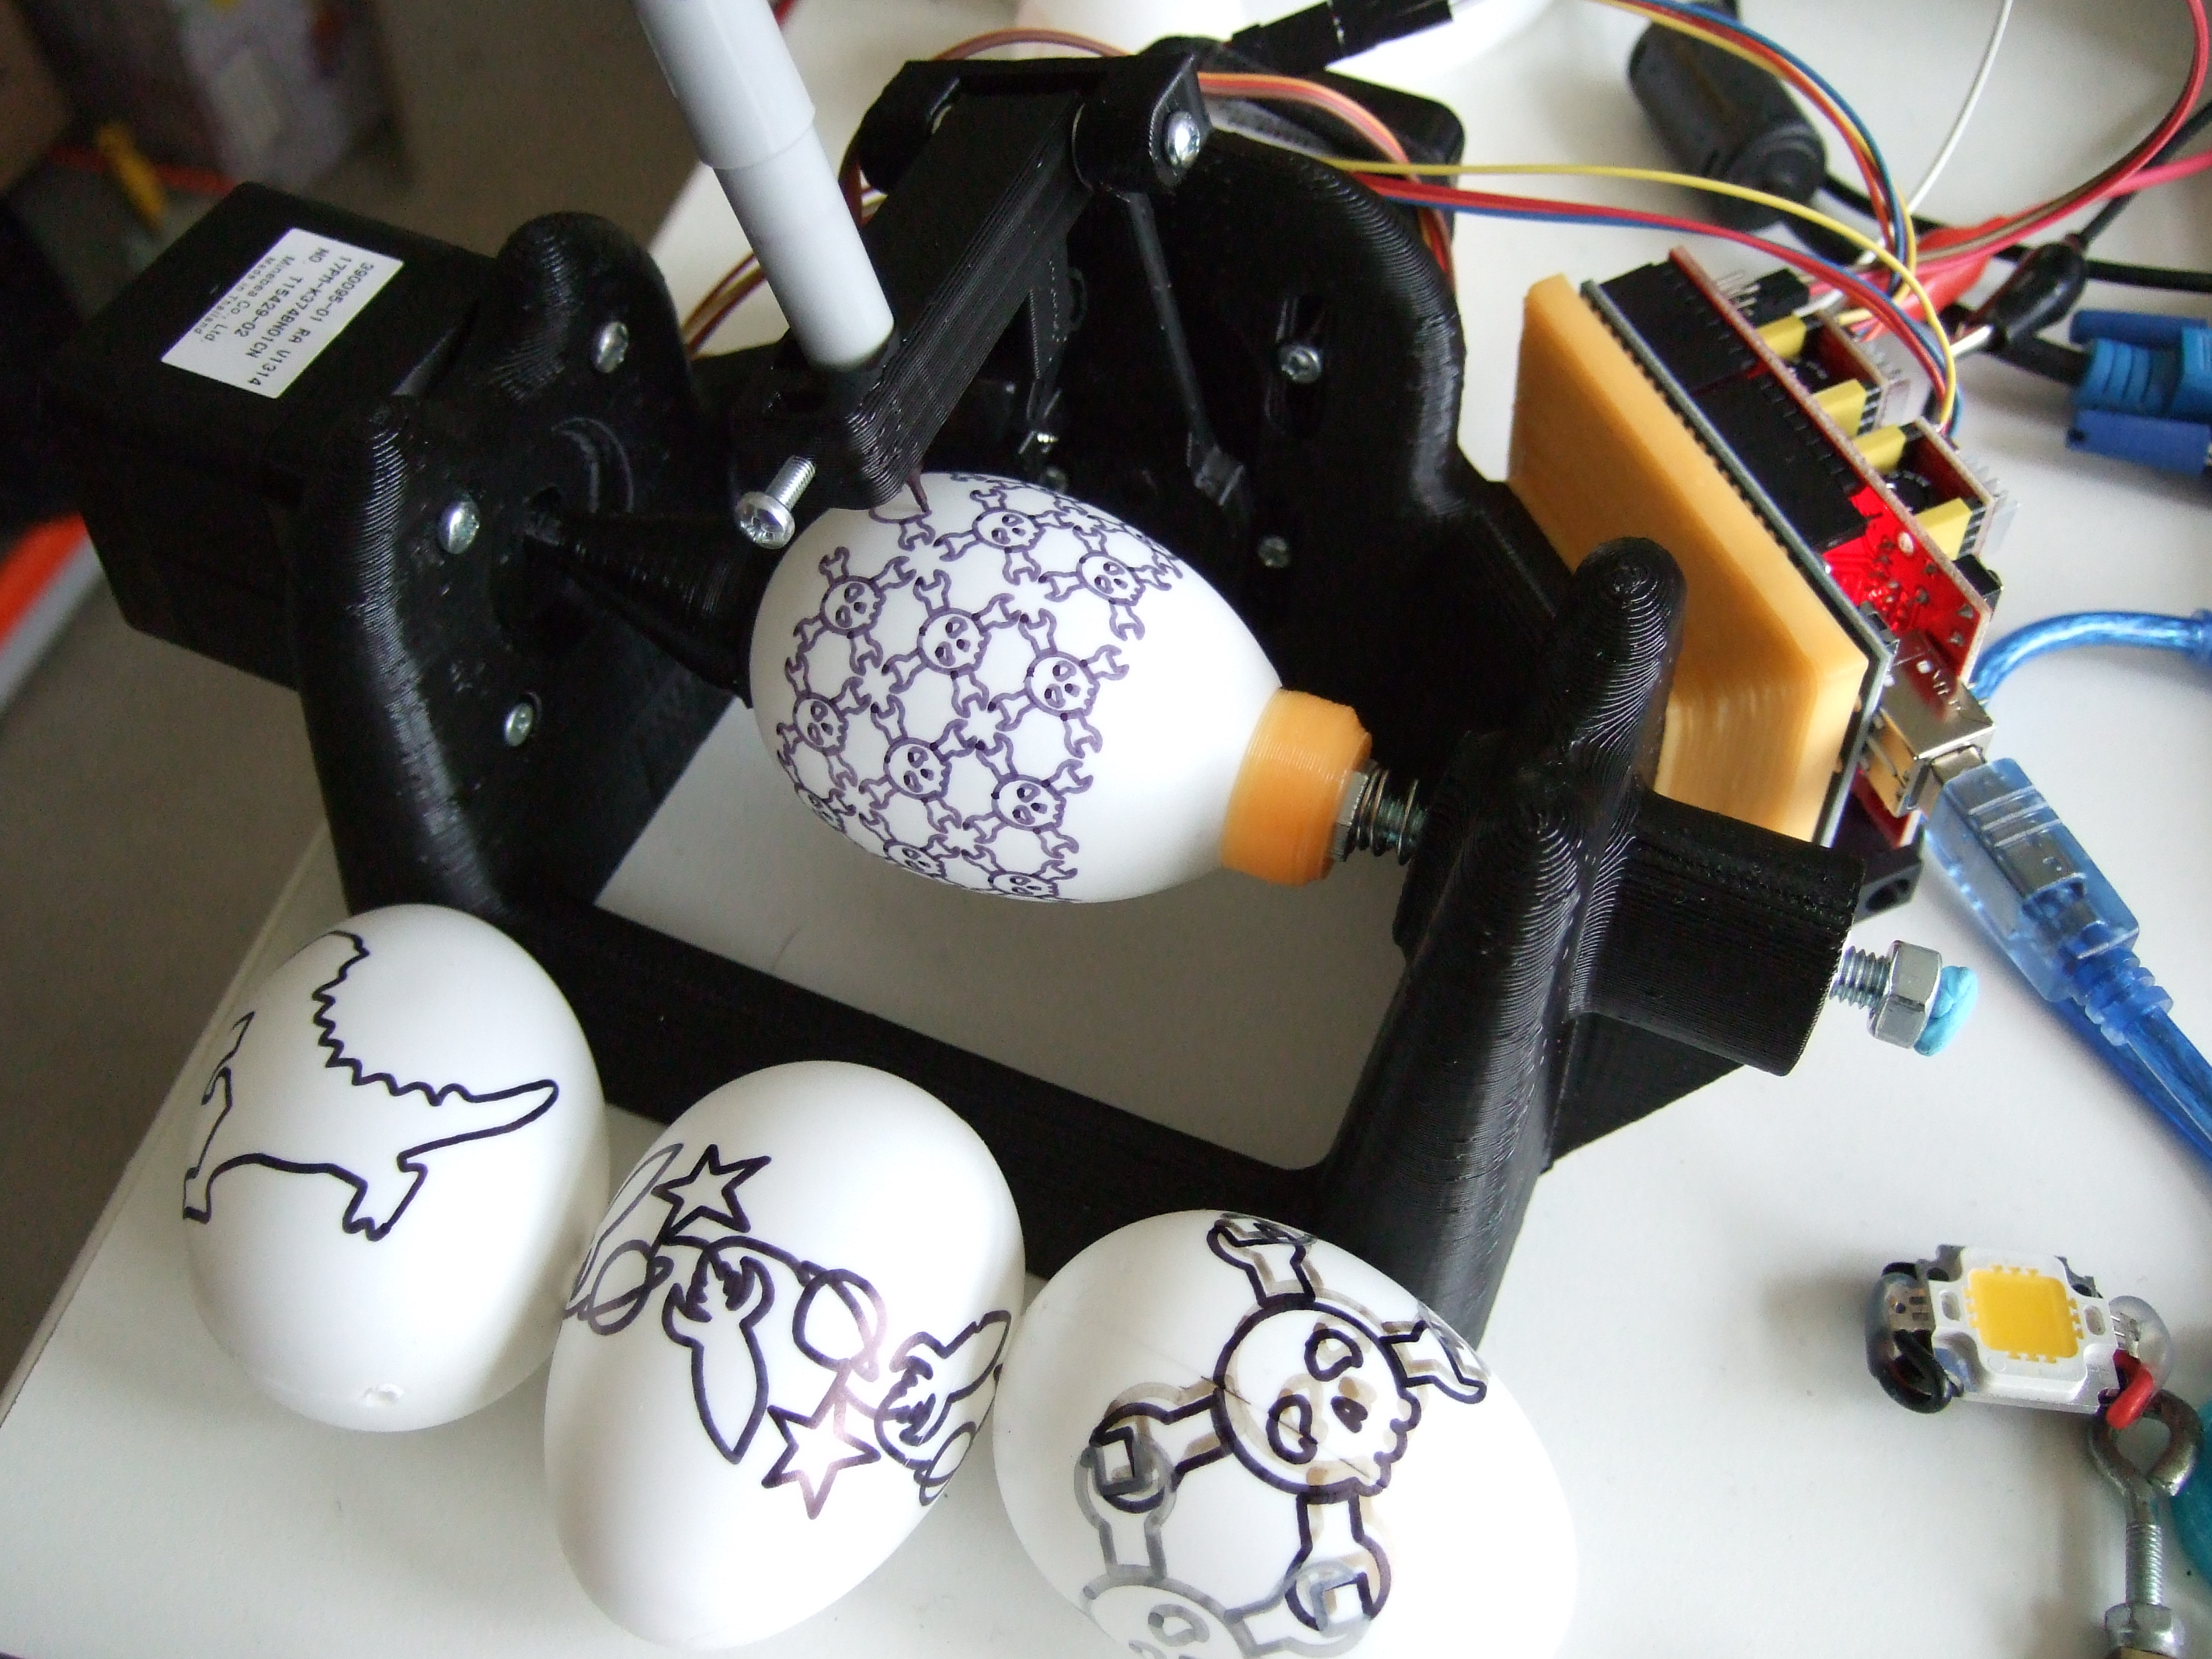 What Can You Learn From An Eggbot? | Hackaday